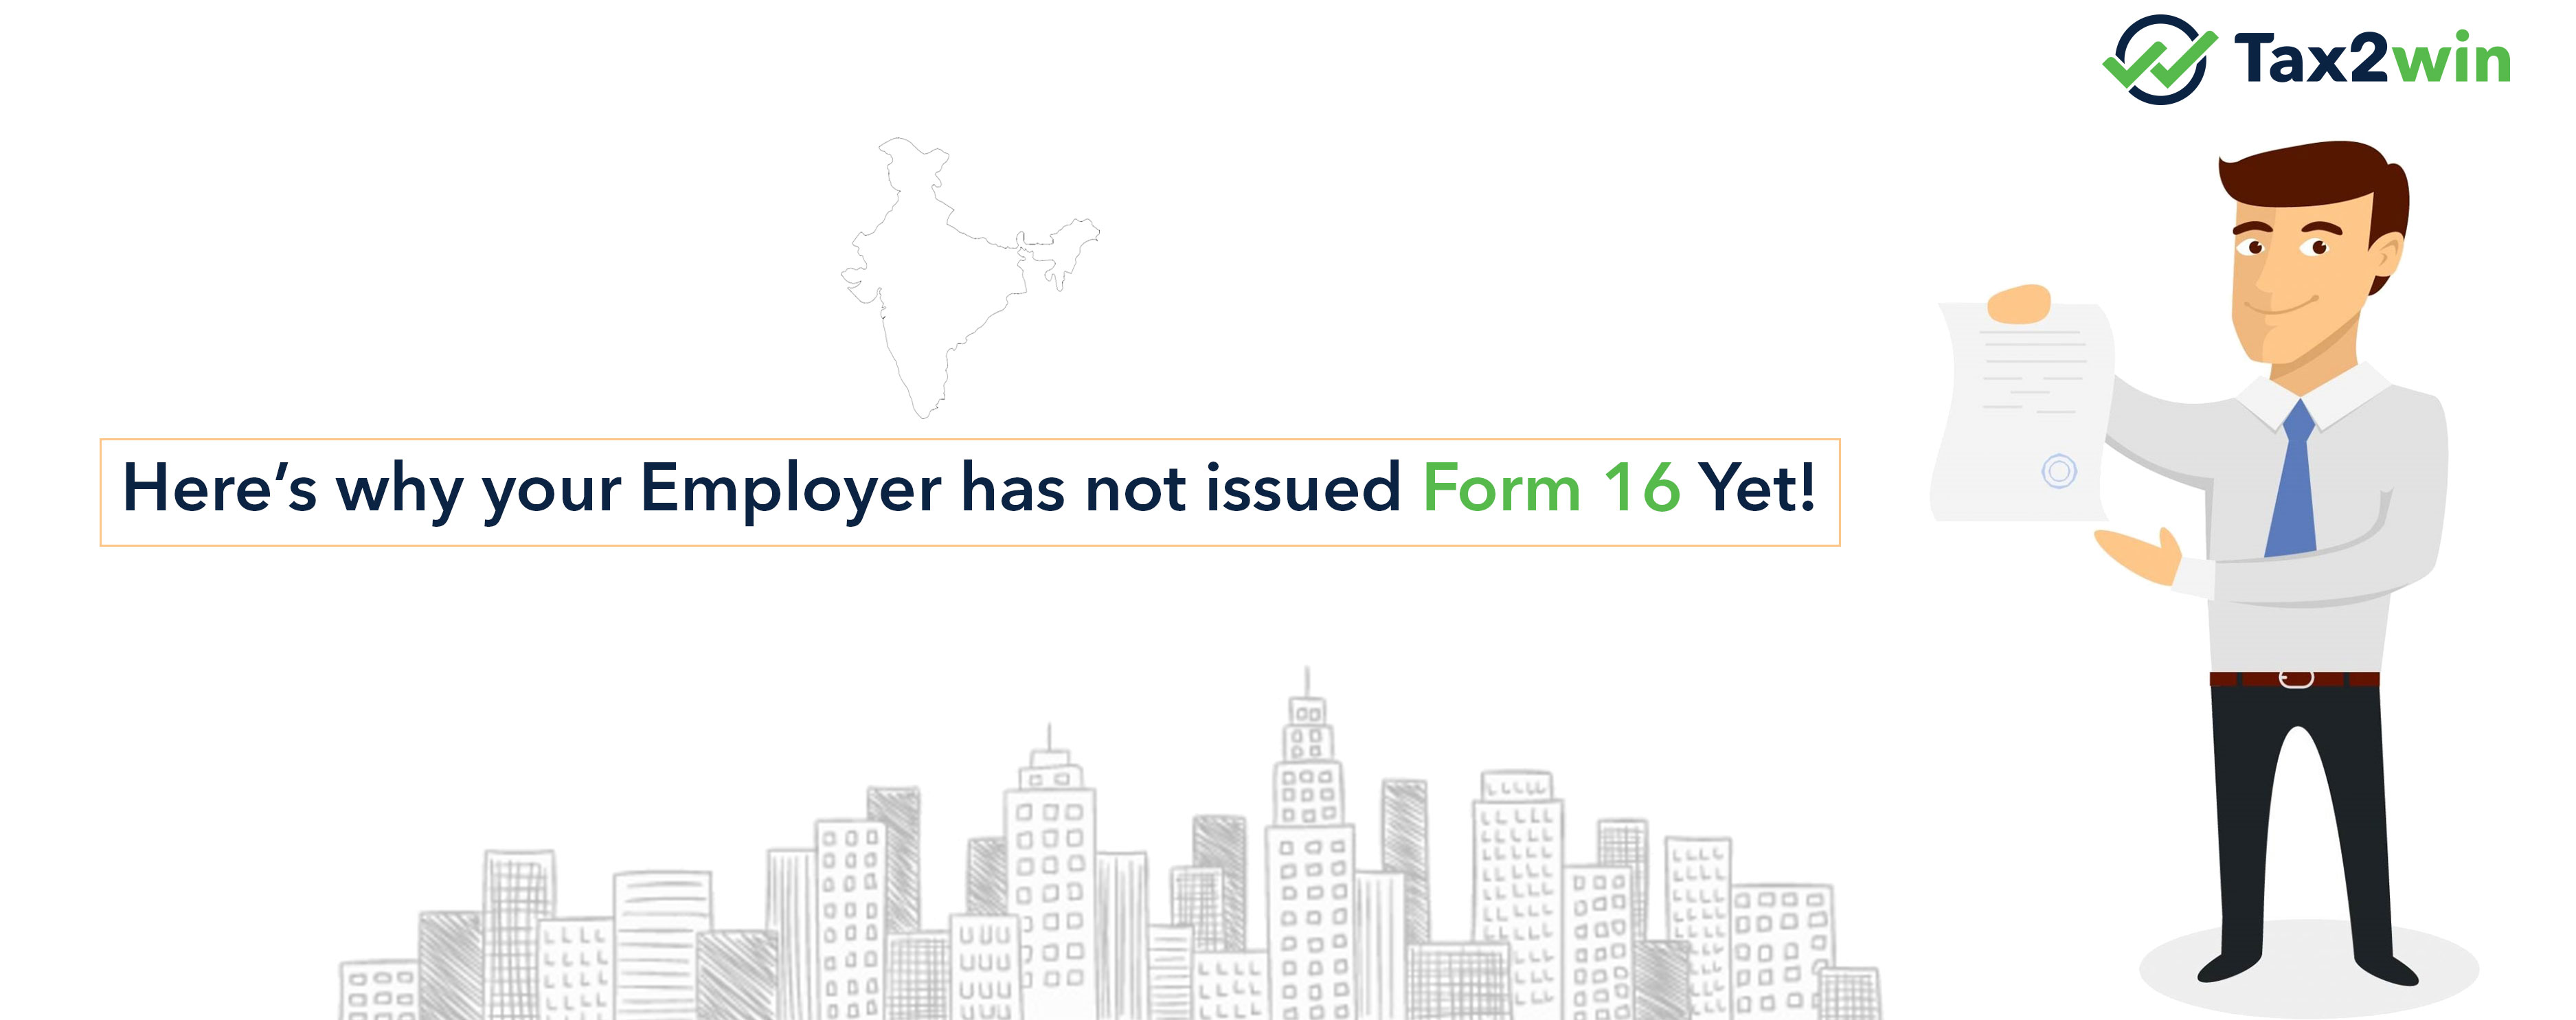 Here's why your Employer has not issued Form 16 Yet!